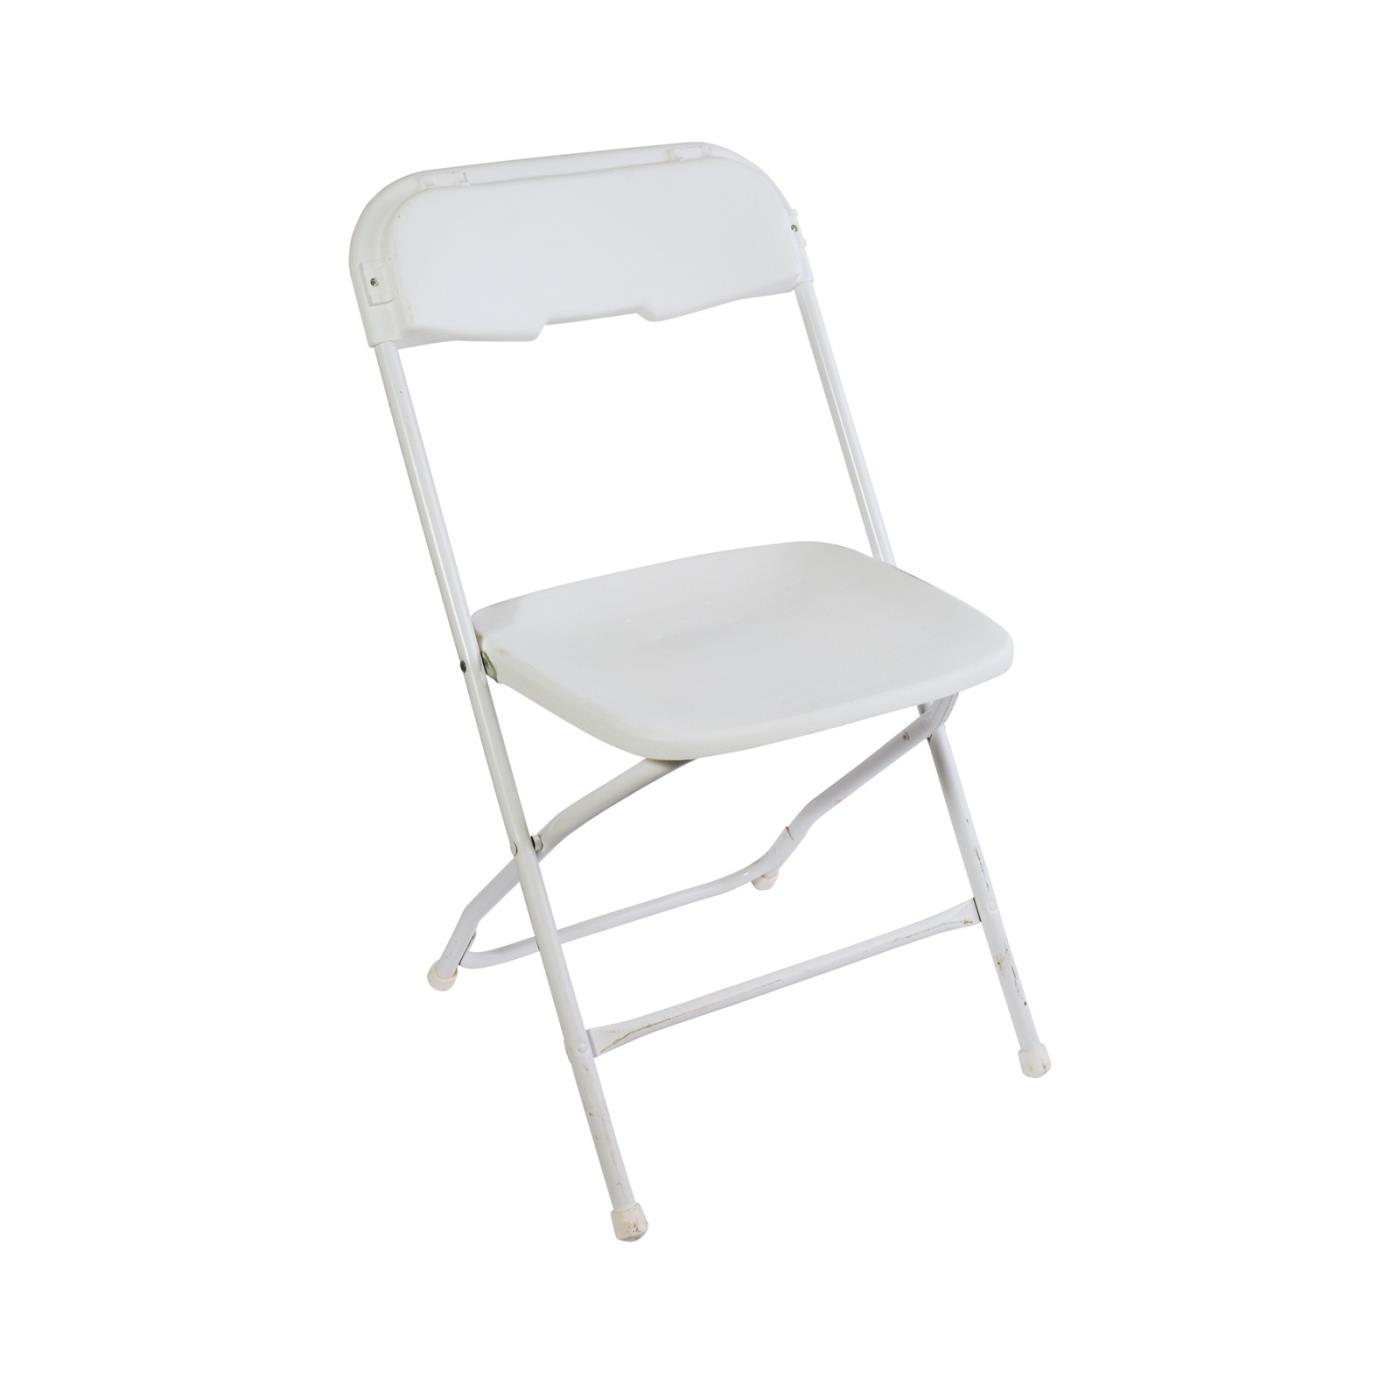 White Plastic Folding Chair